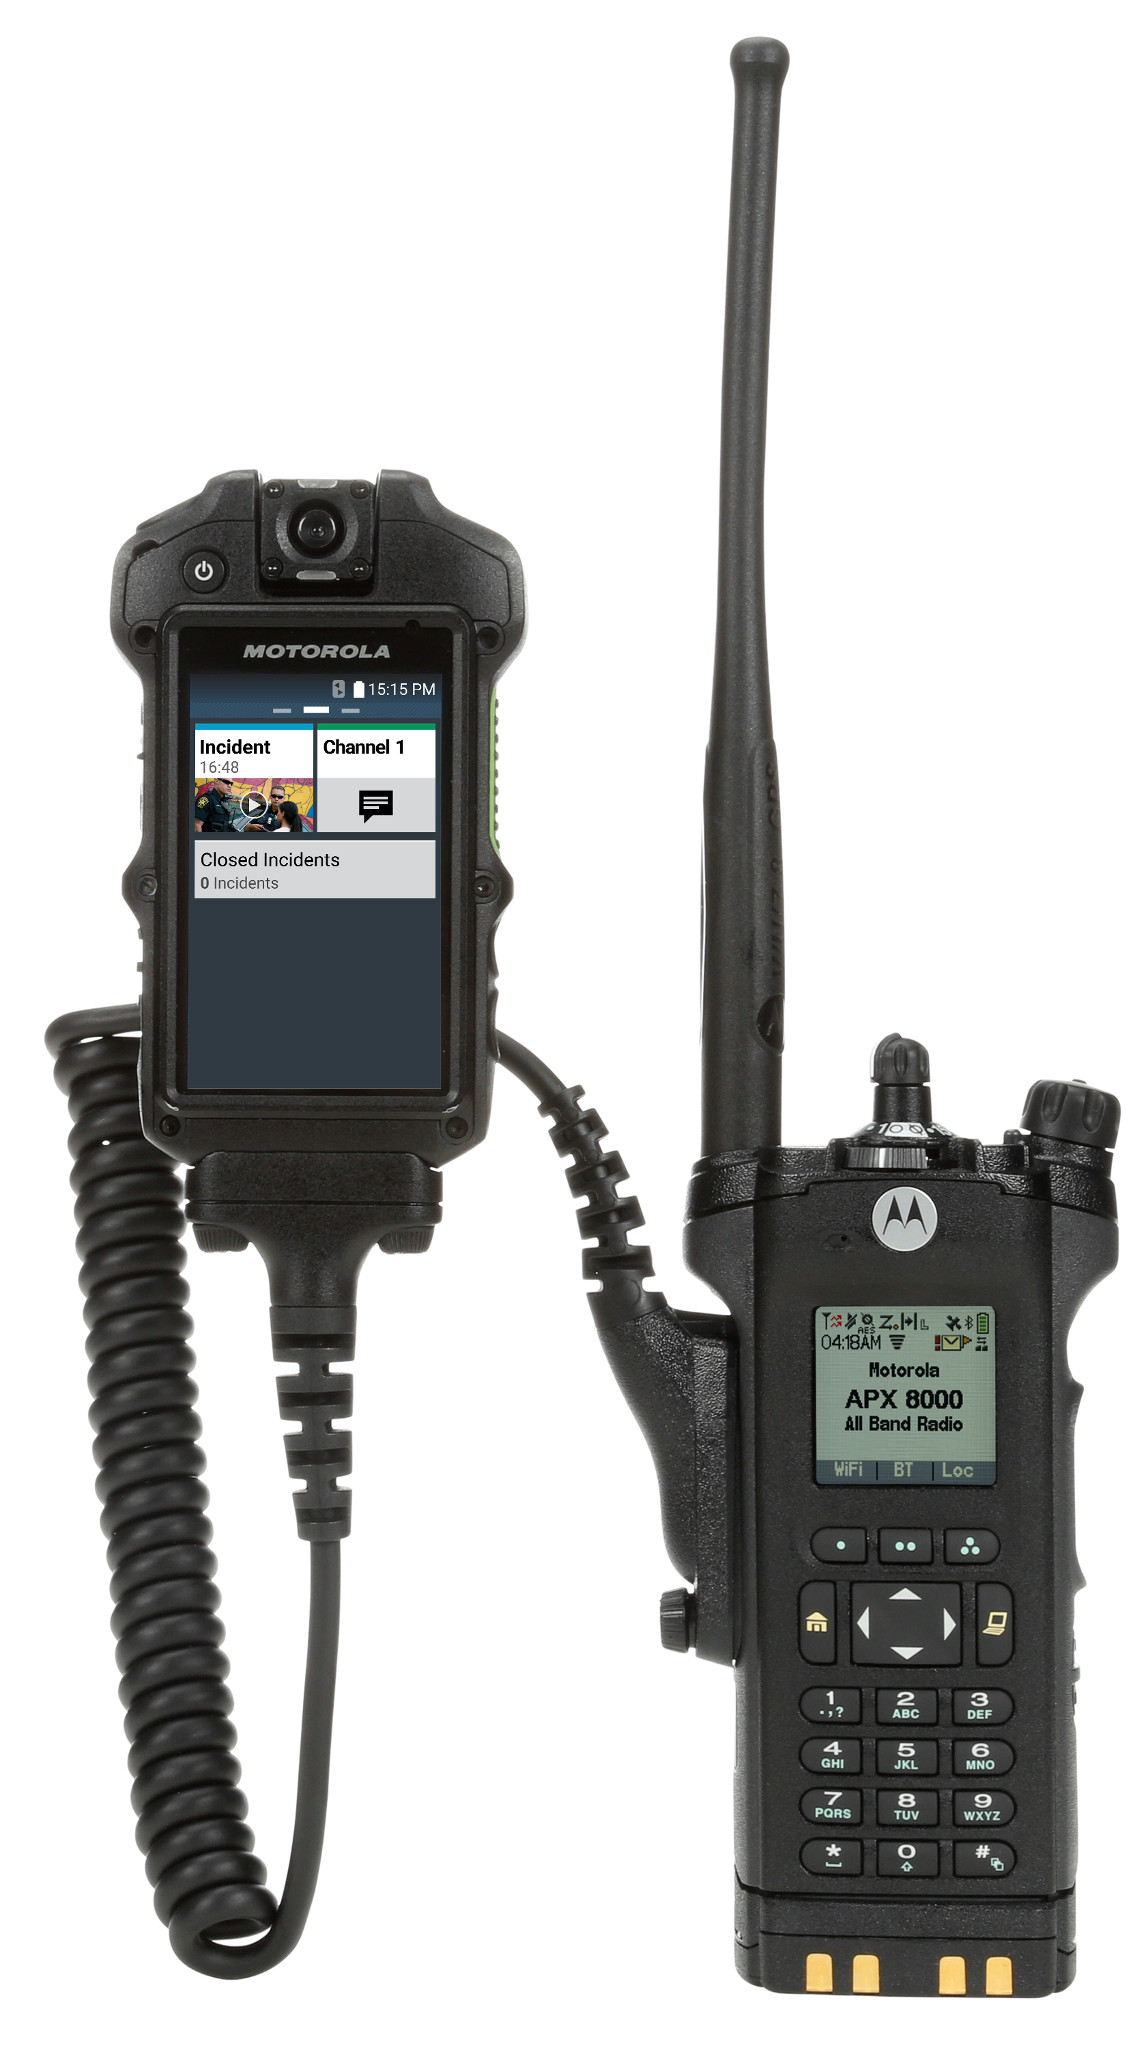 Radio Holder Motorola Apx 6000 - Motorola body worn camera and integrated speaker mic works with apx radios